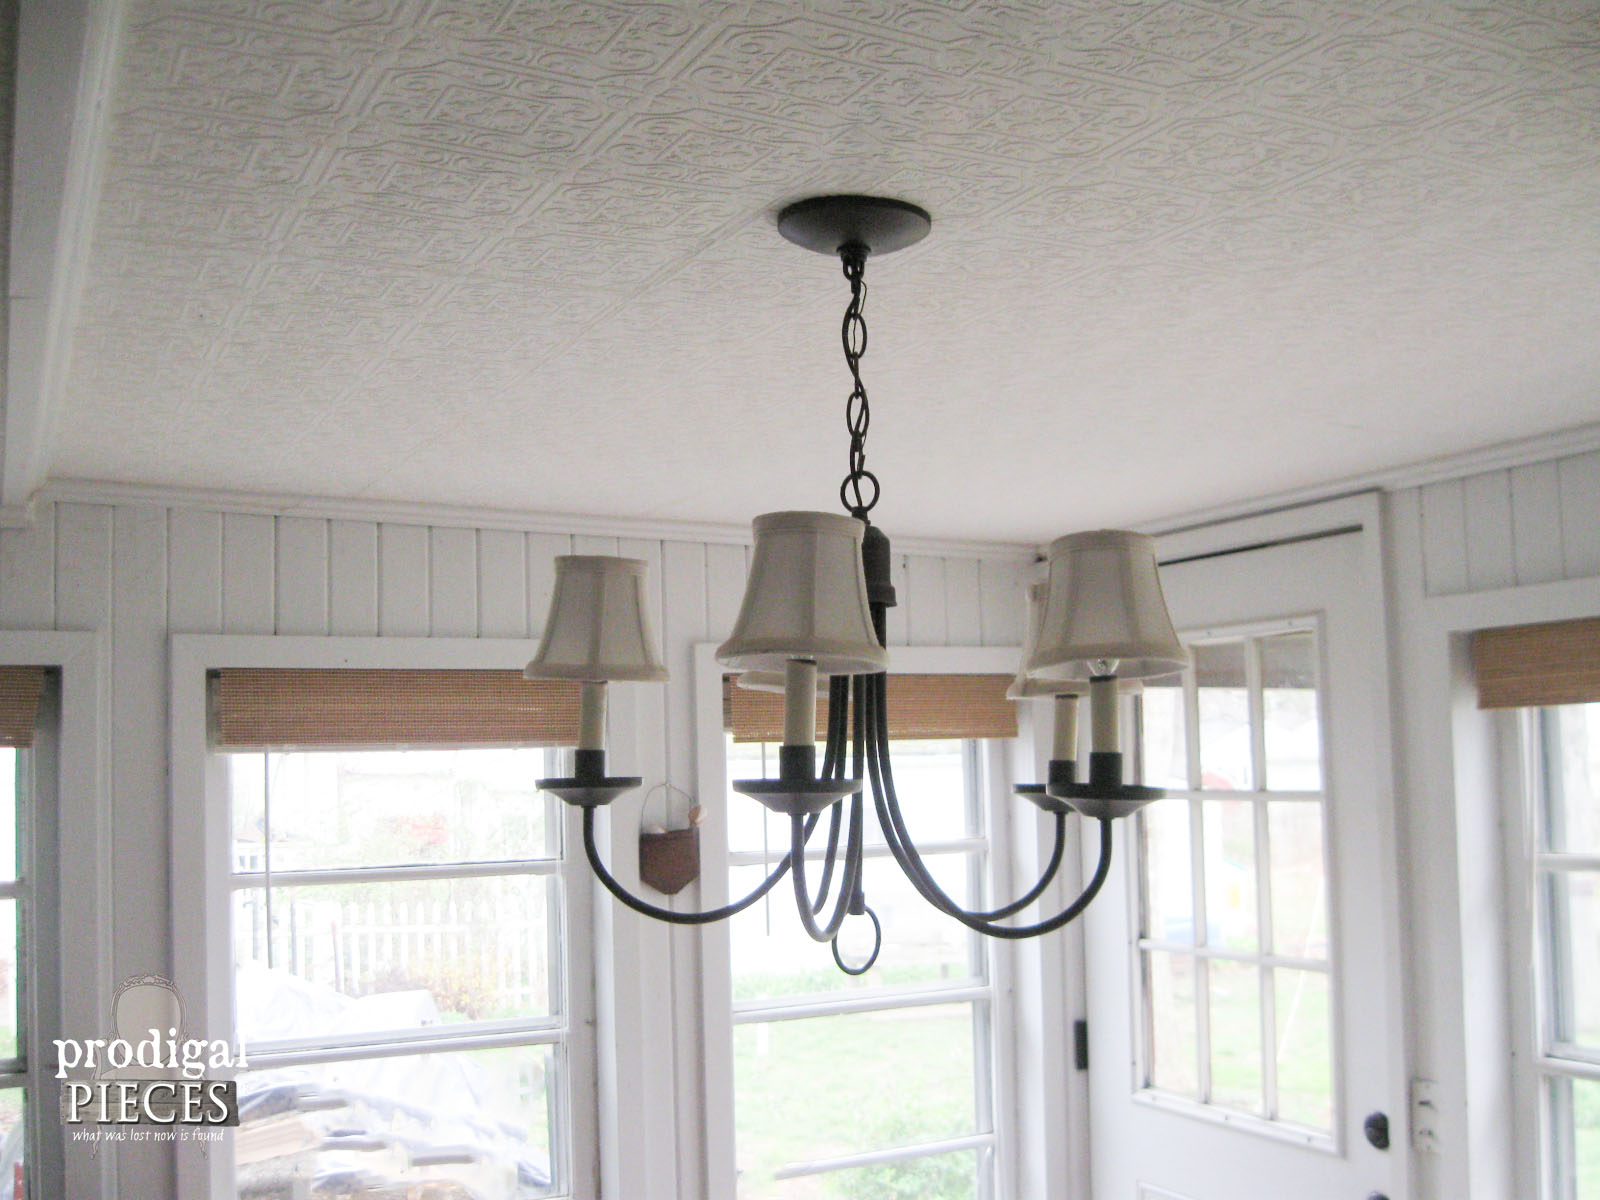 Dining Area Chandelier Before Kitchen Remodel | Prodigal Pieces | www.prodigalpieces.com